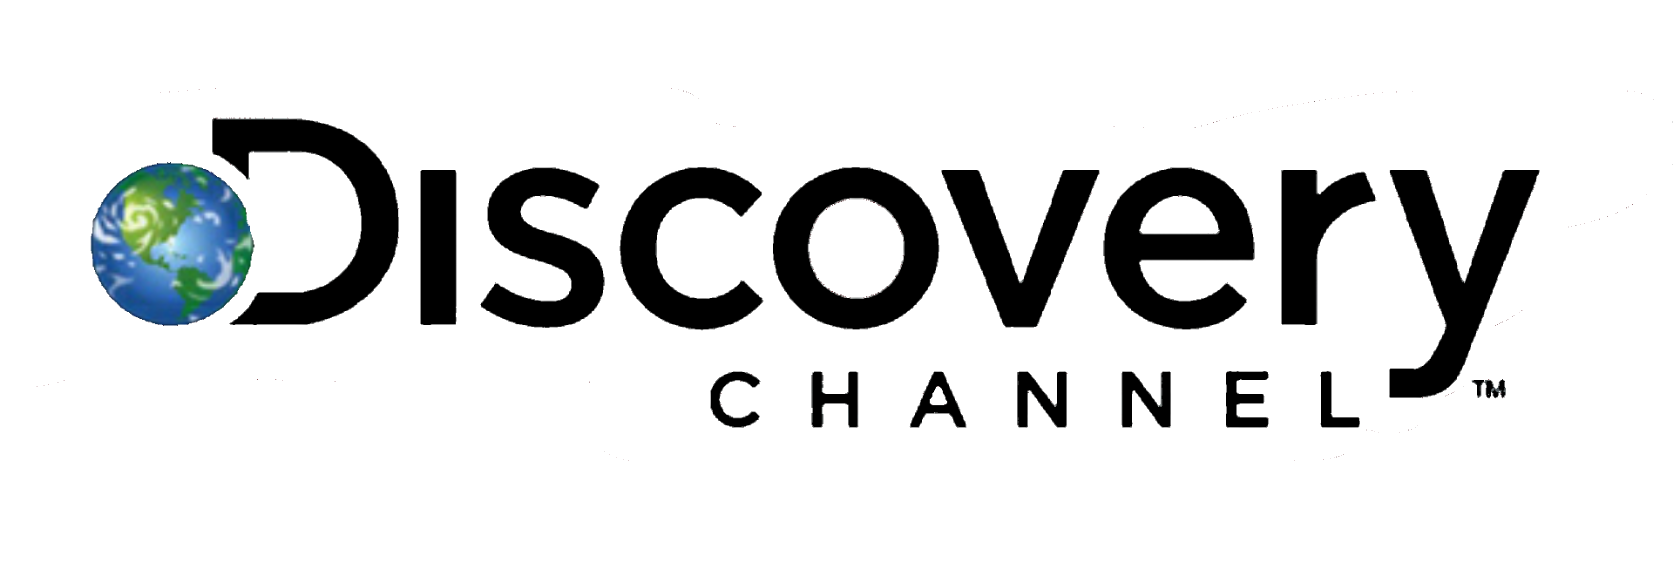 Discovery_Channel_logo-0.png